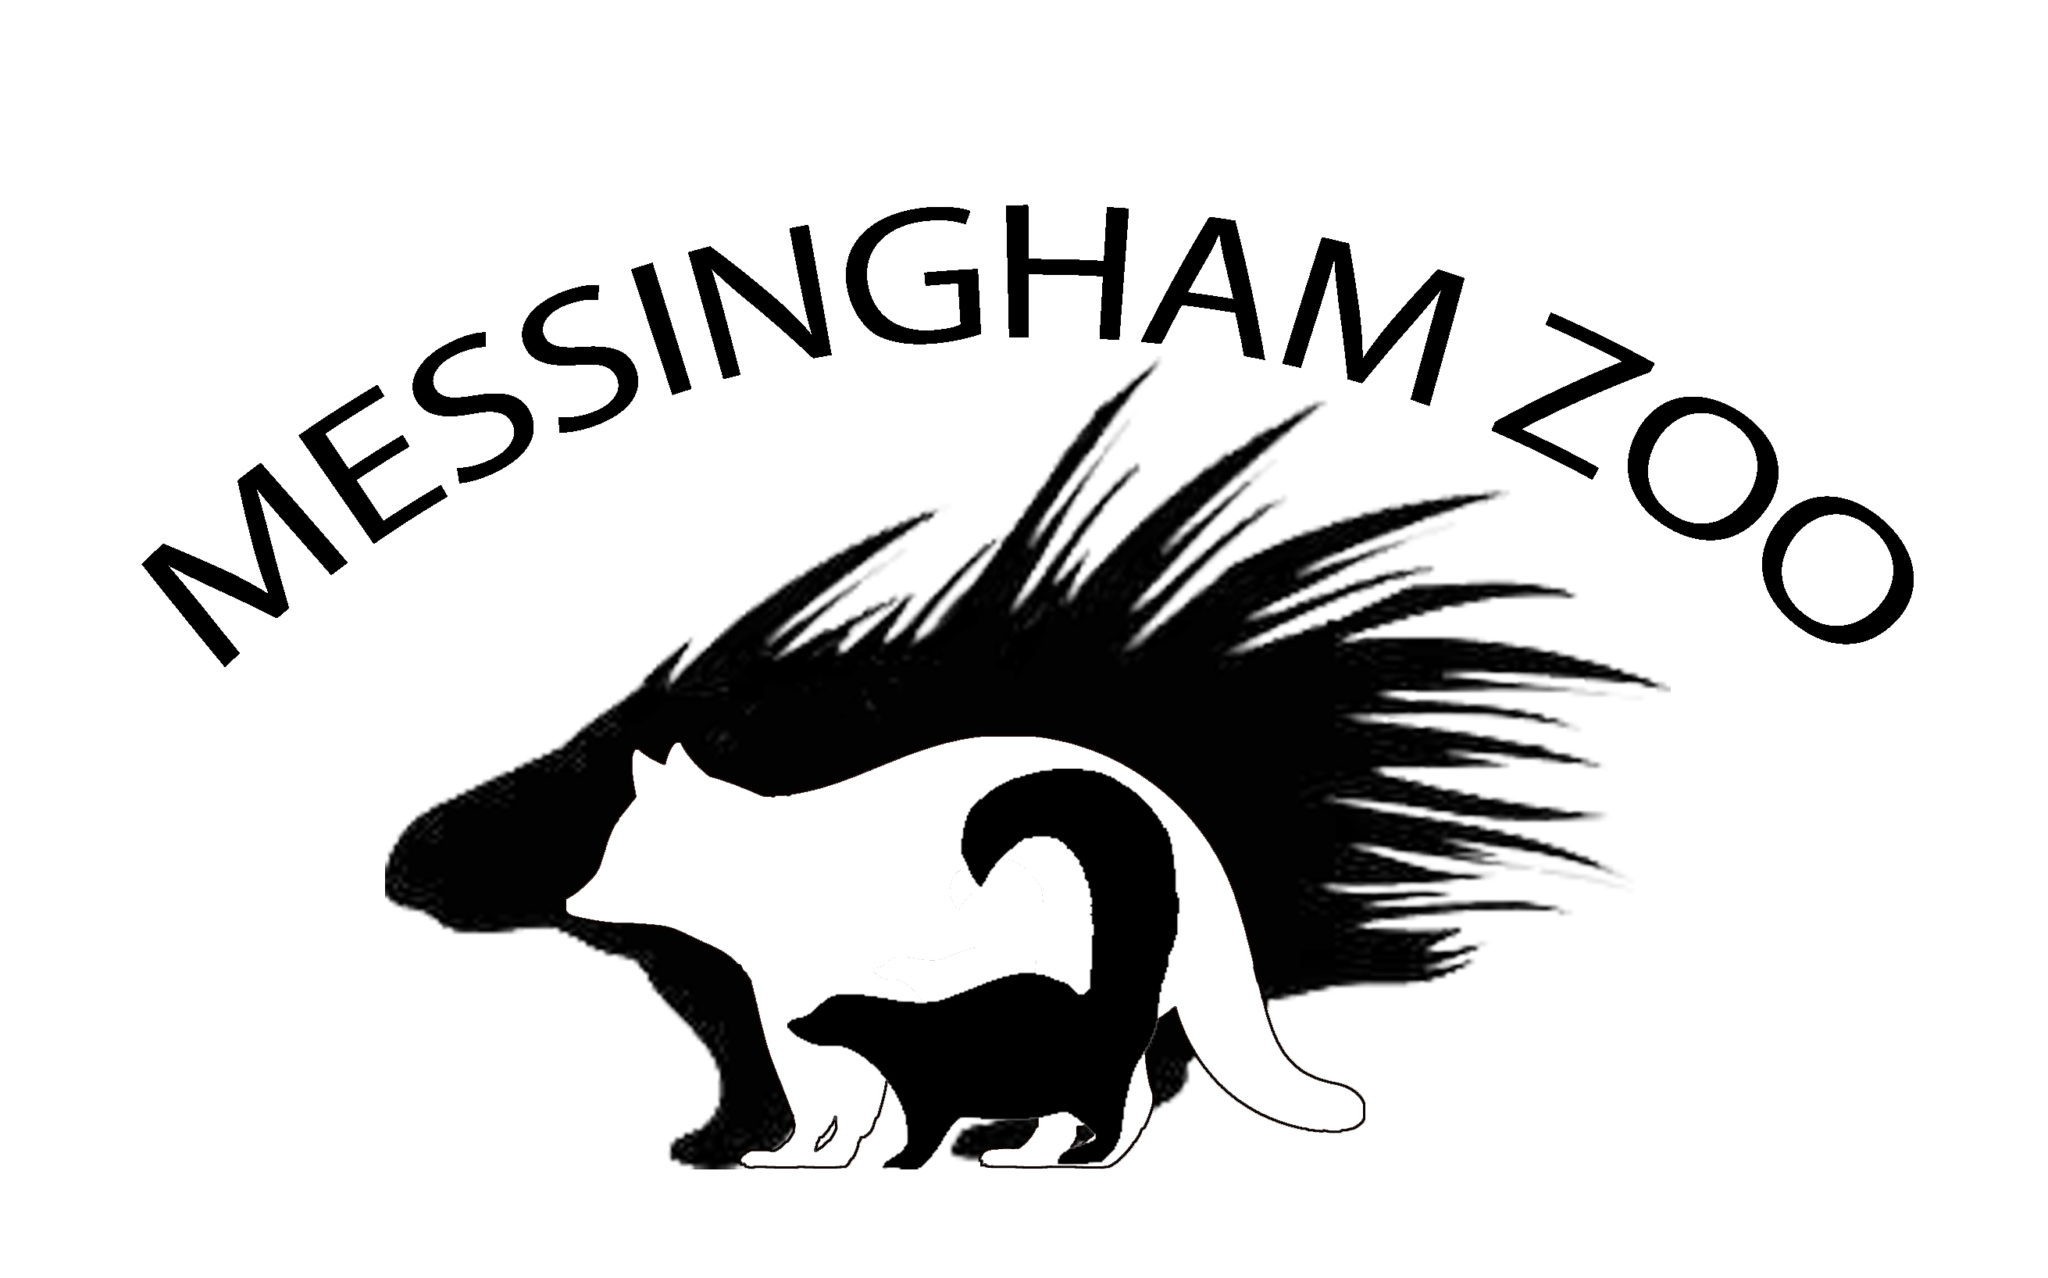 MESSINGHAM ZOO